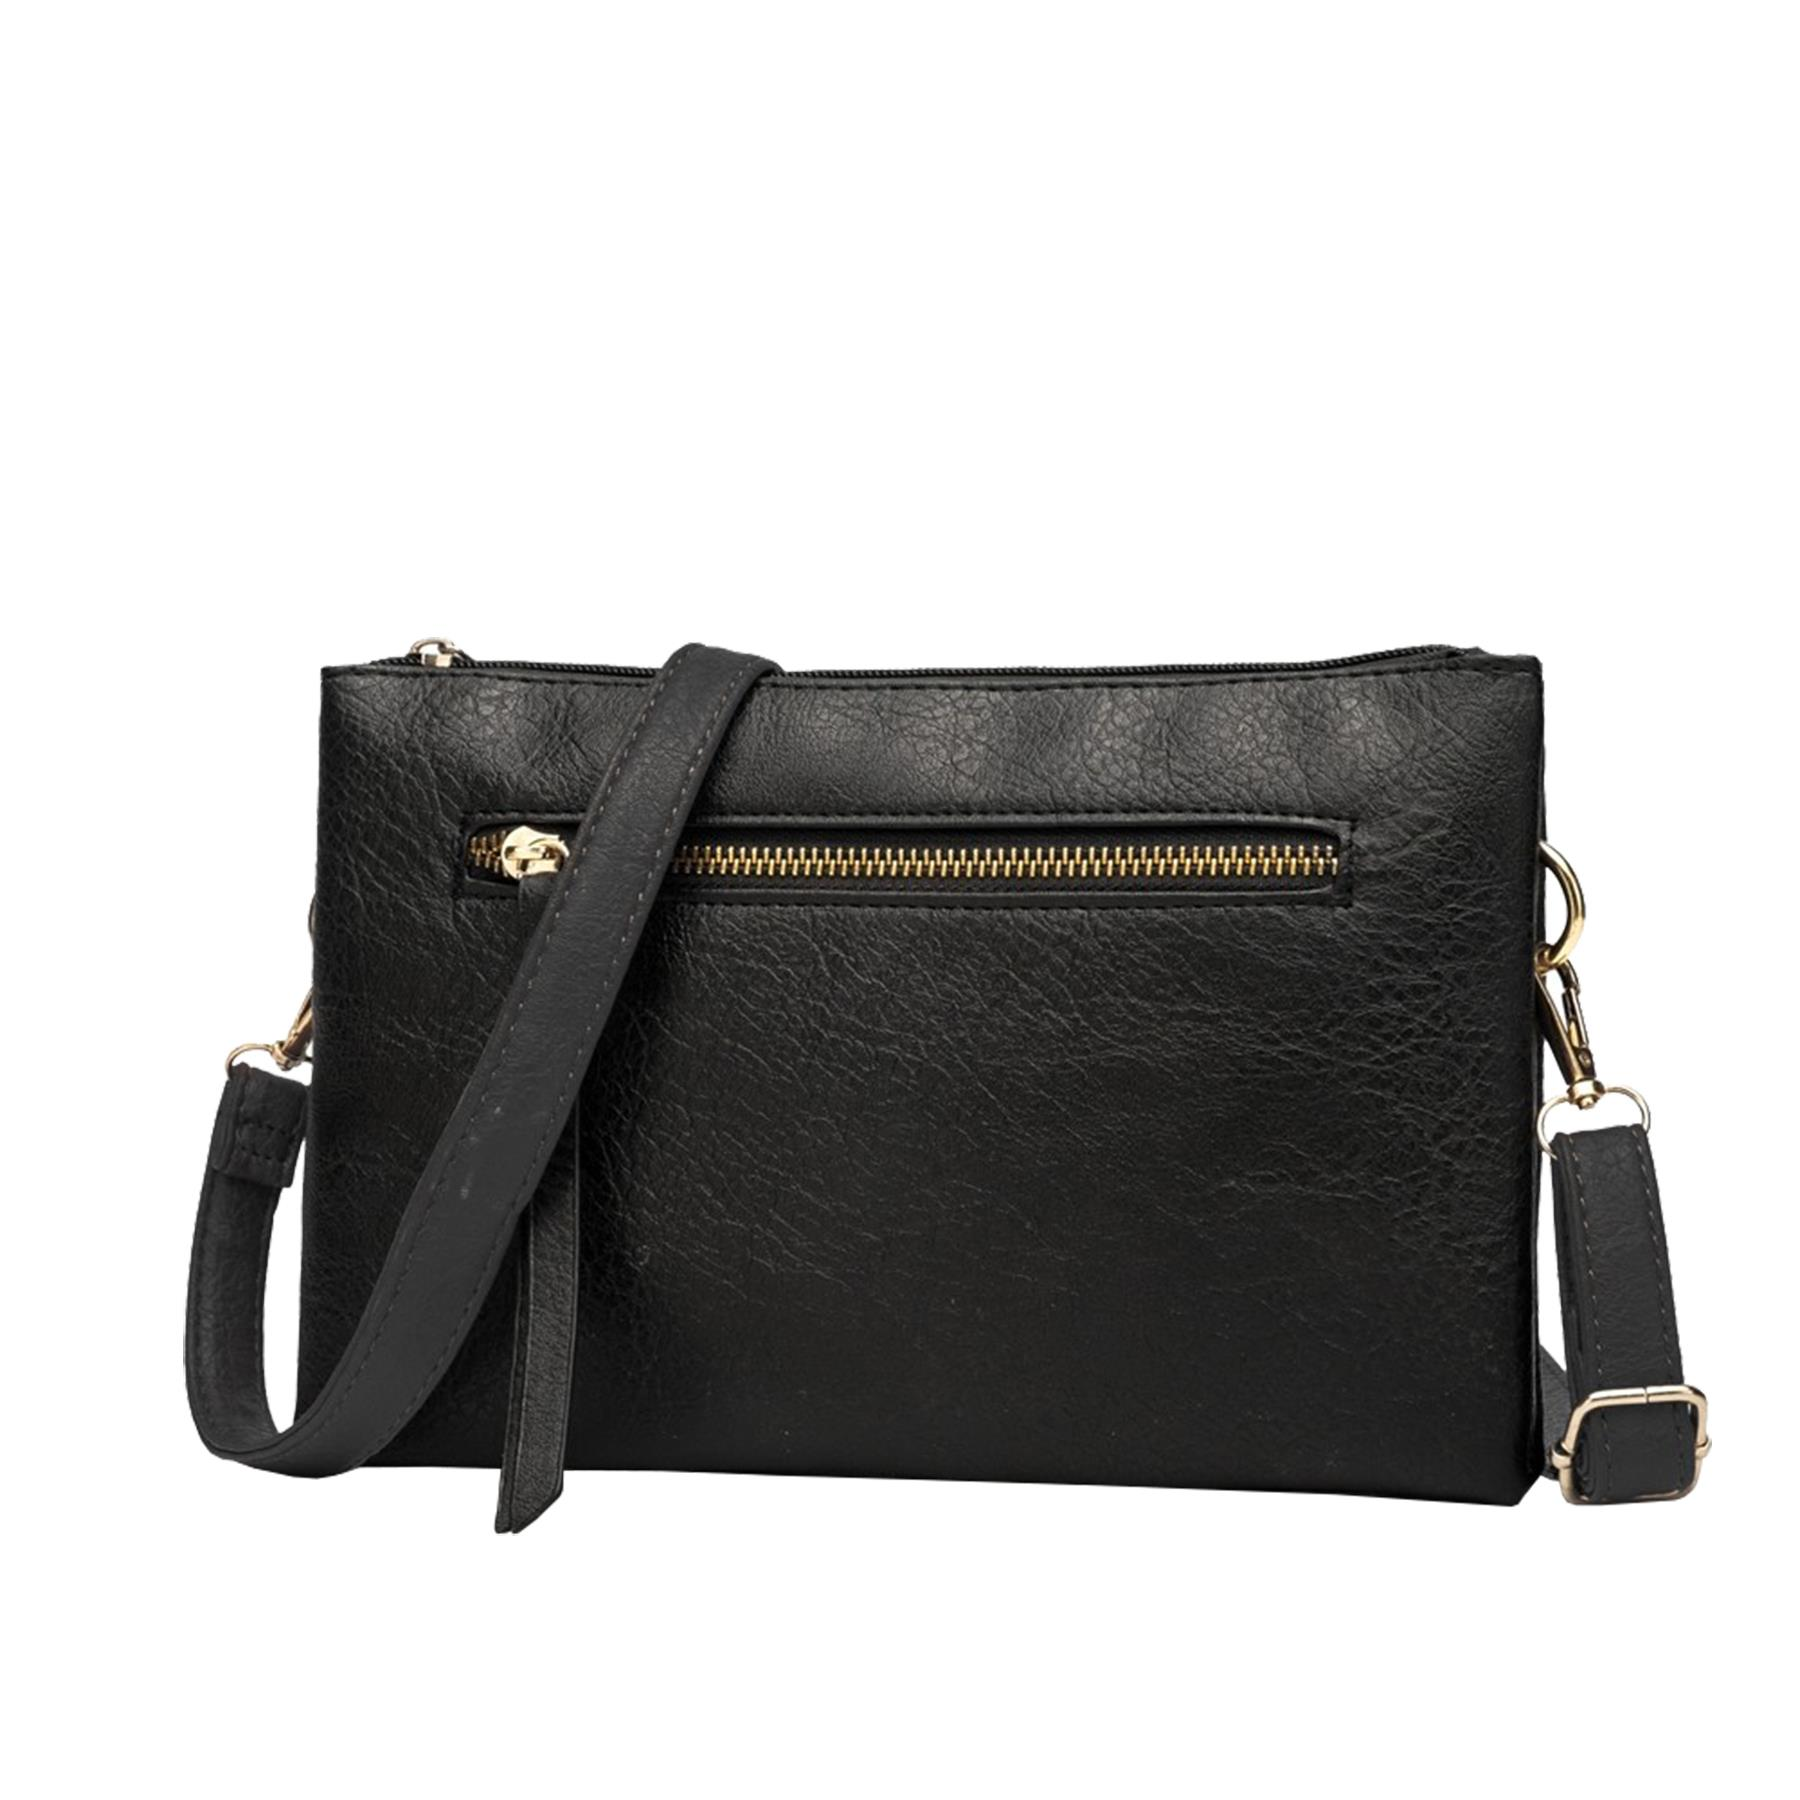 New-Plain-Synthetic-Leather-Women-s-Simple-Casual-Cross-Body-Bag thumbnail 3